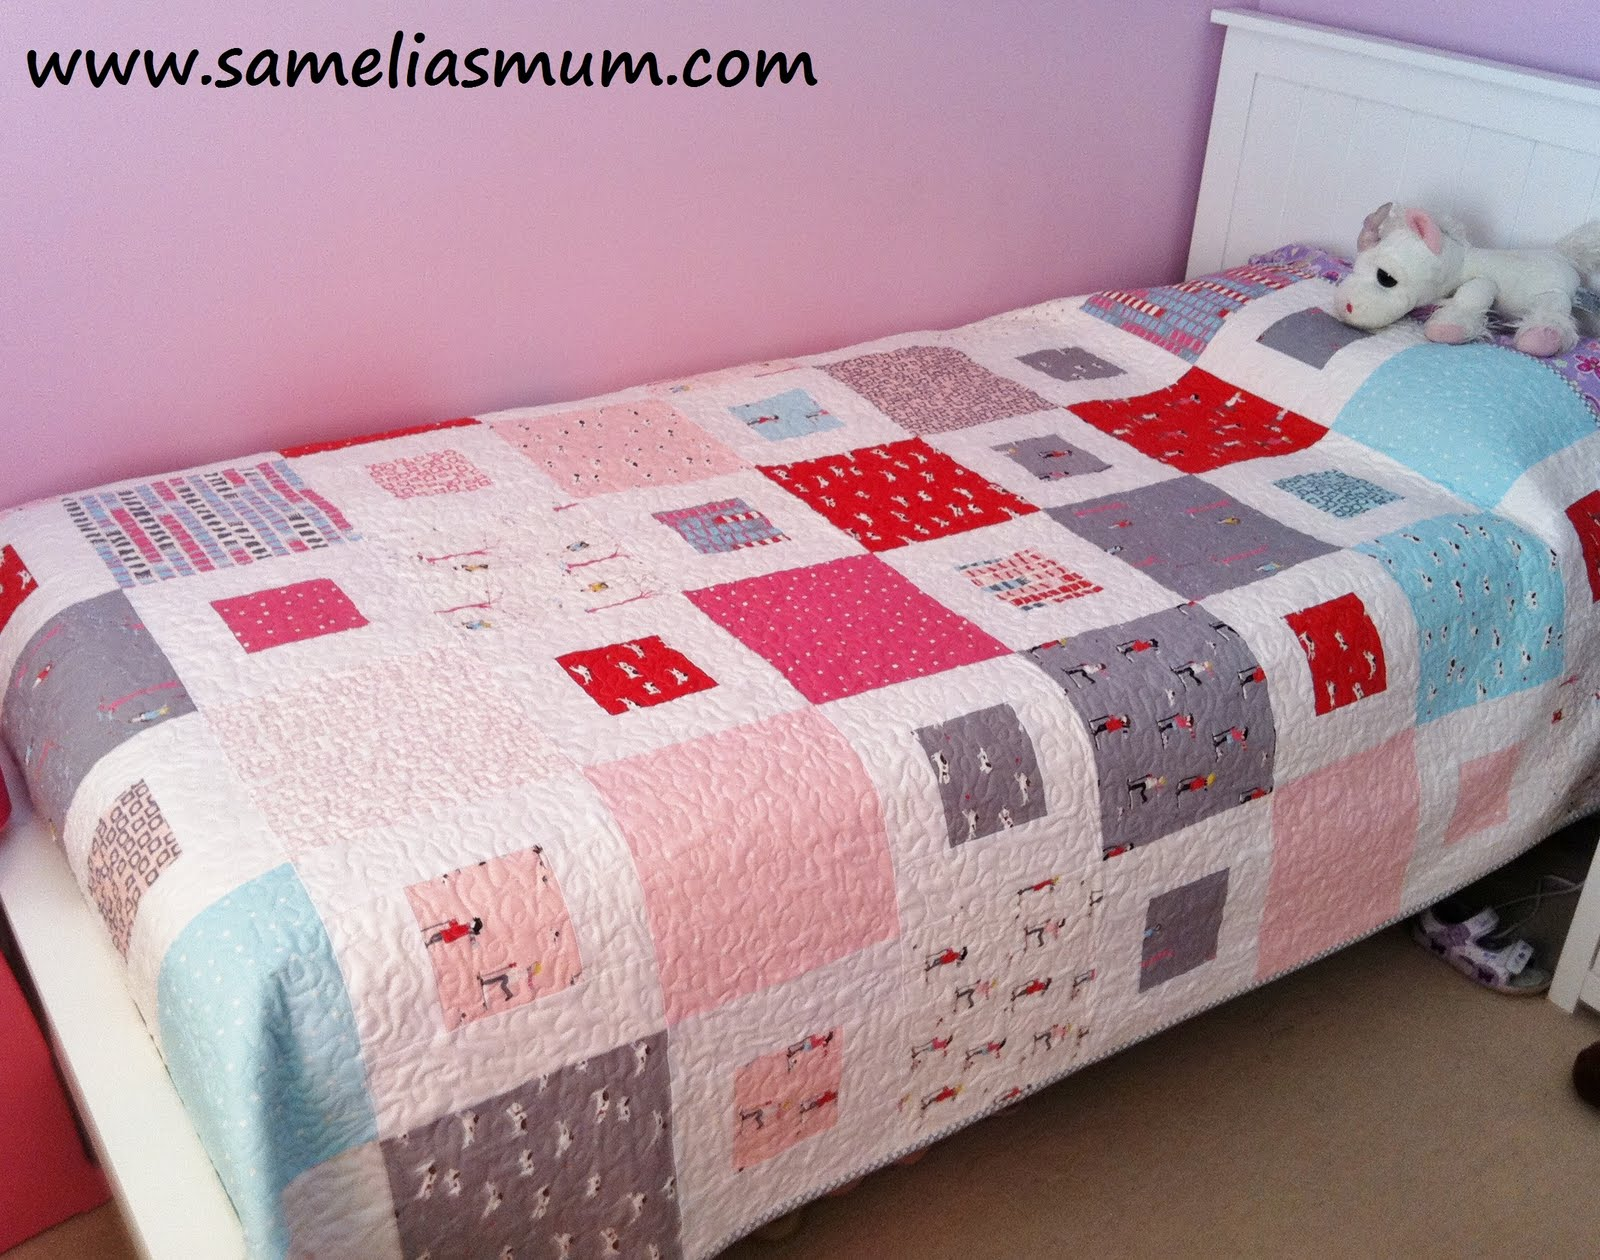 Samelia's Mum: 1 + 2 = Easy Quilt Pattern (Tutorial) : quilting patterns beginners - Adamdwight.com